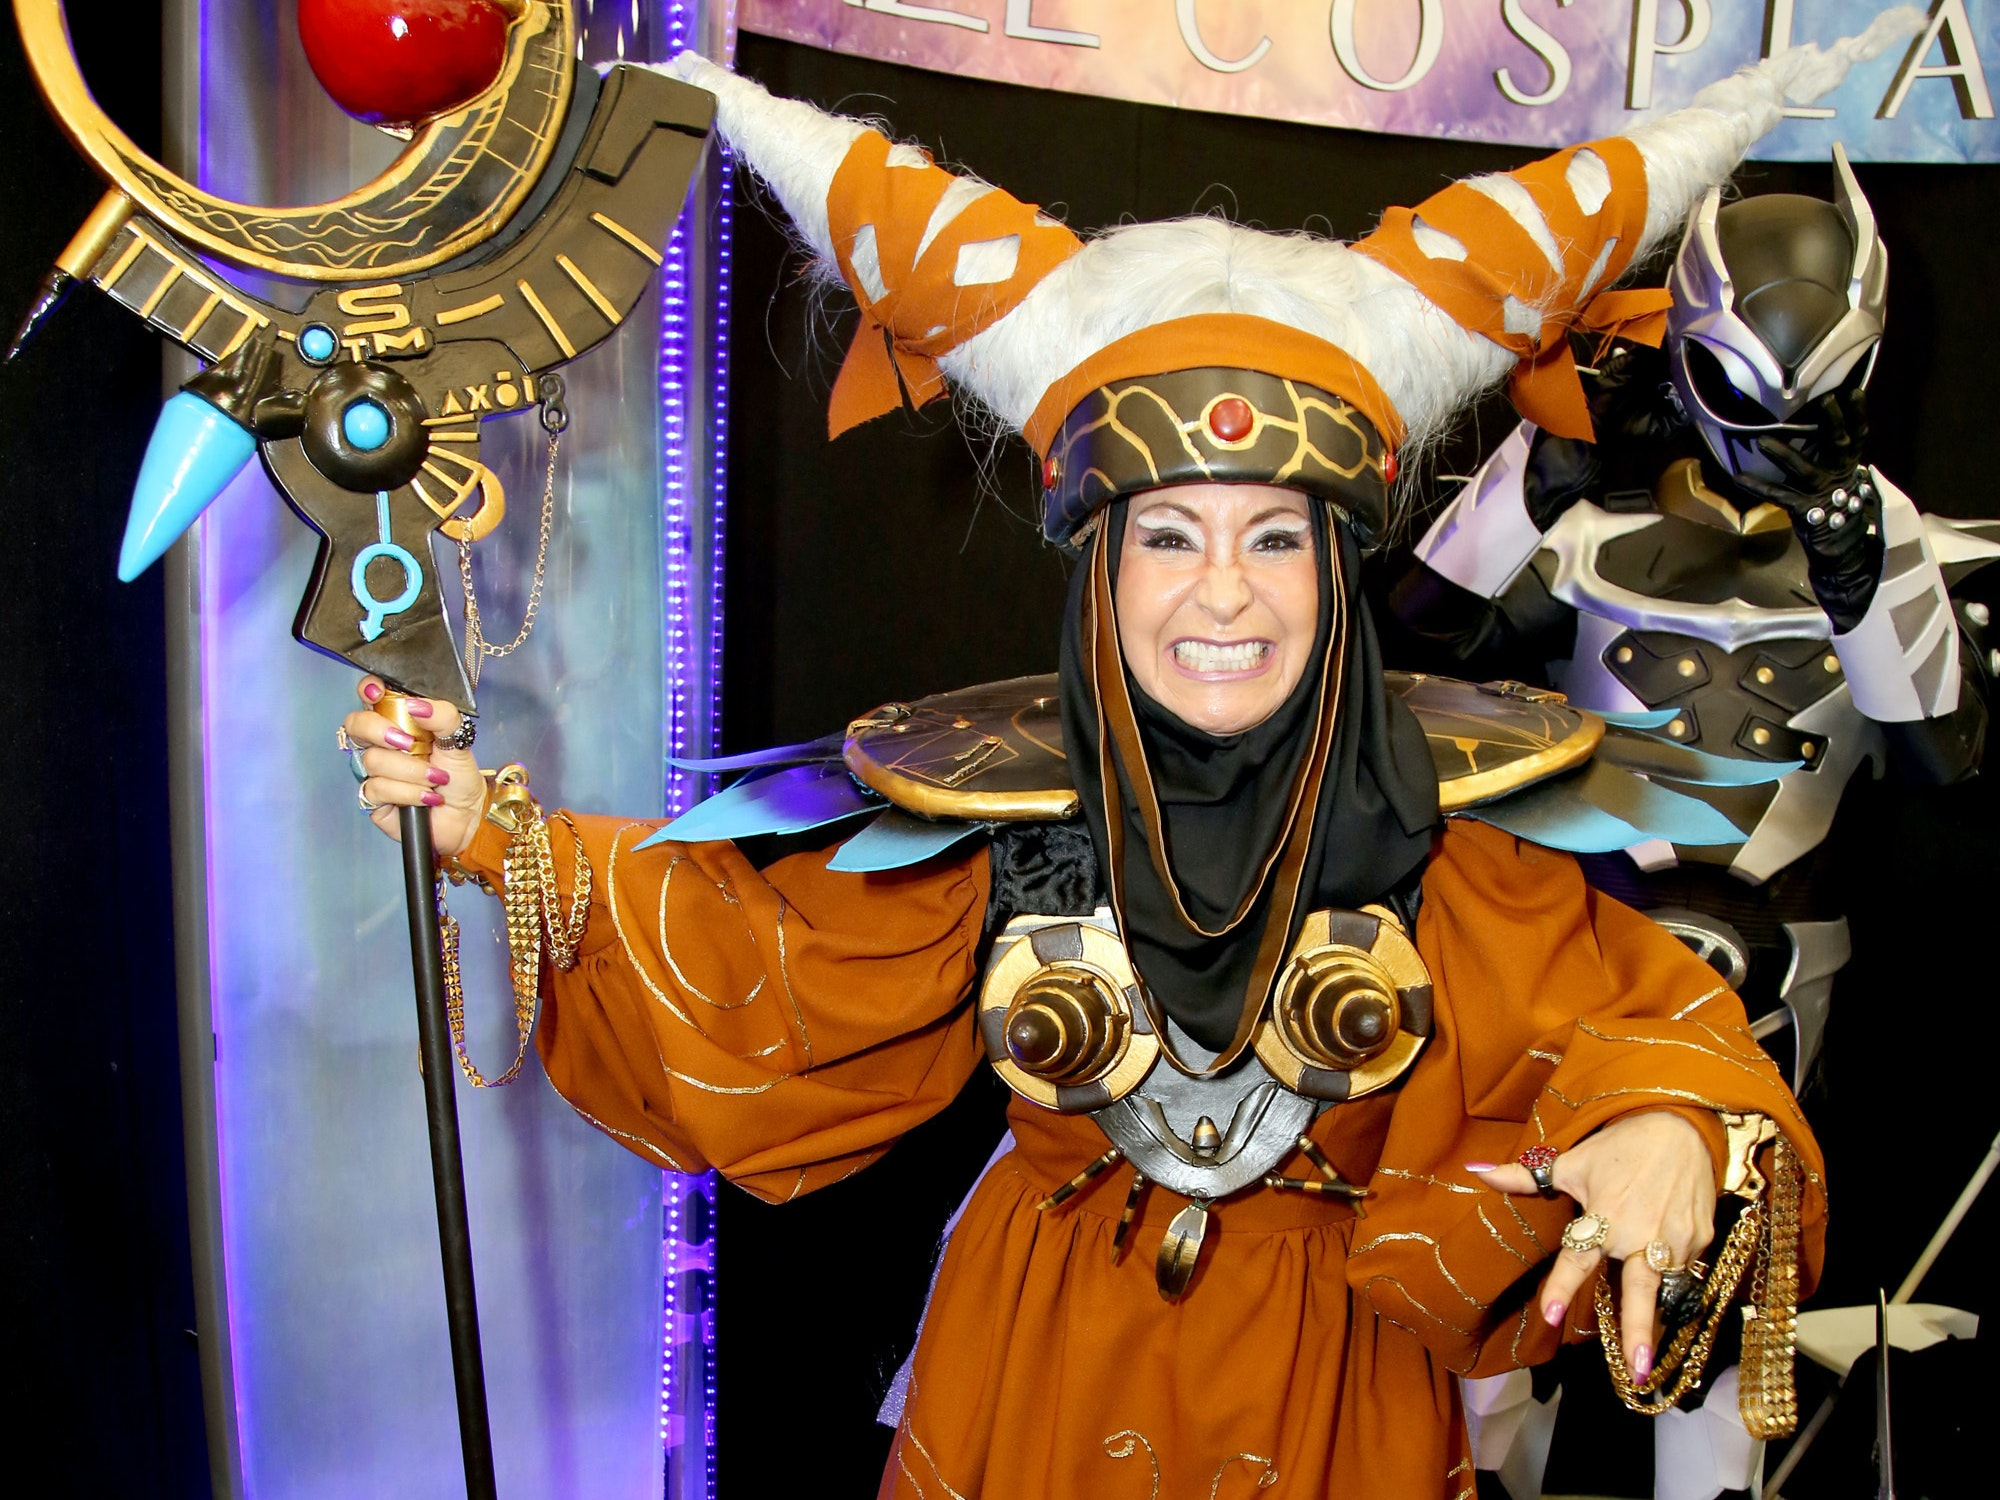 A Rita Repulsa cosplayer at the 2014 Power Morphicon at the Pasadena Convention Center in California. The convention returned two years later in 2016.